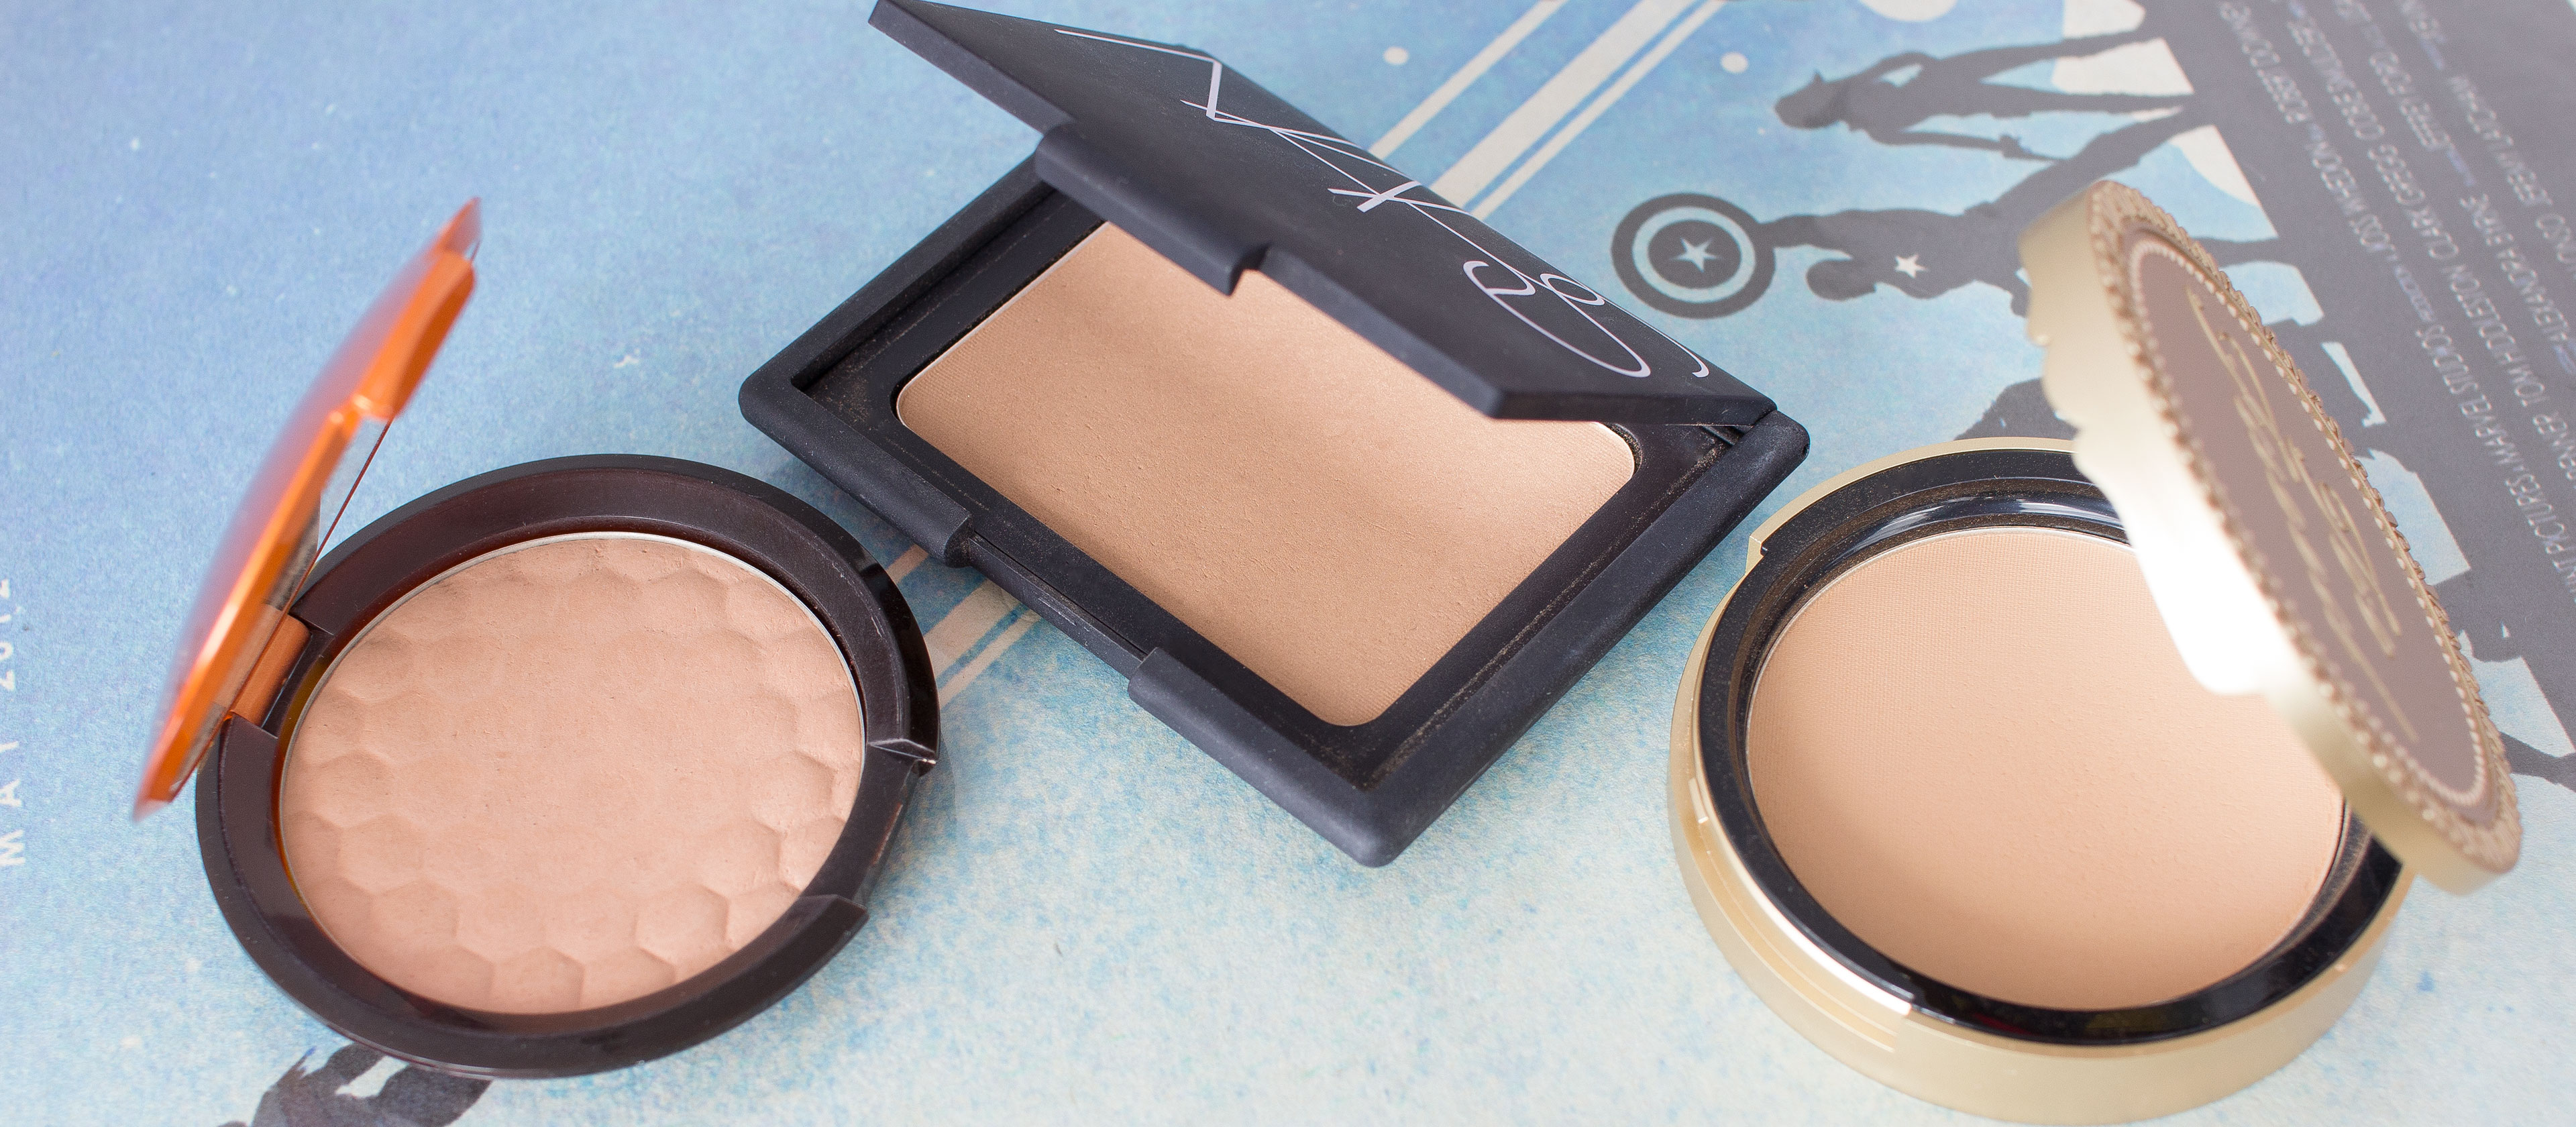 bronzers-for-fair-skin